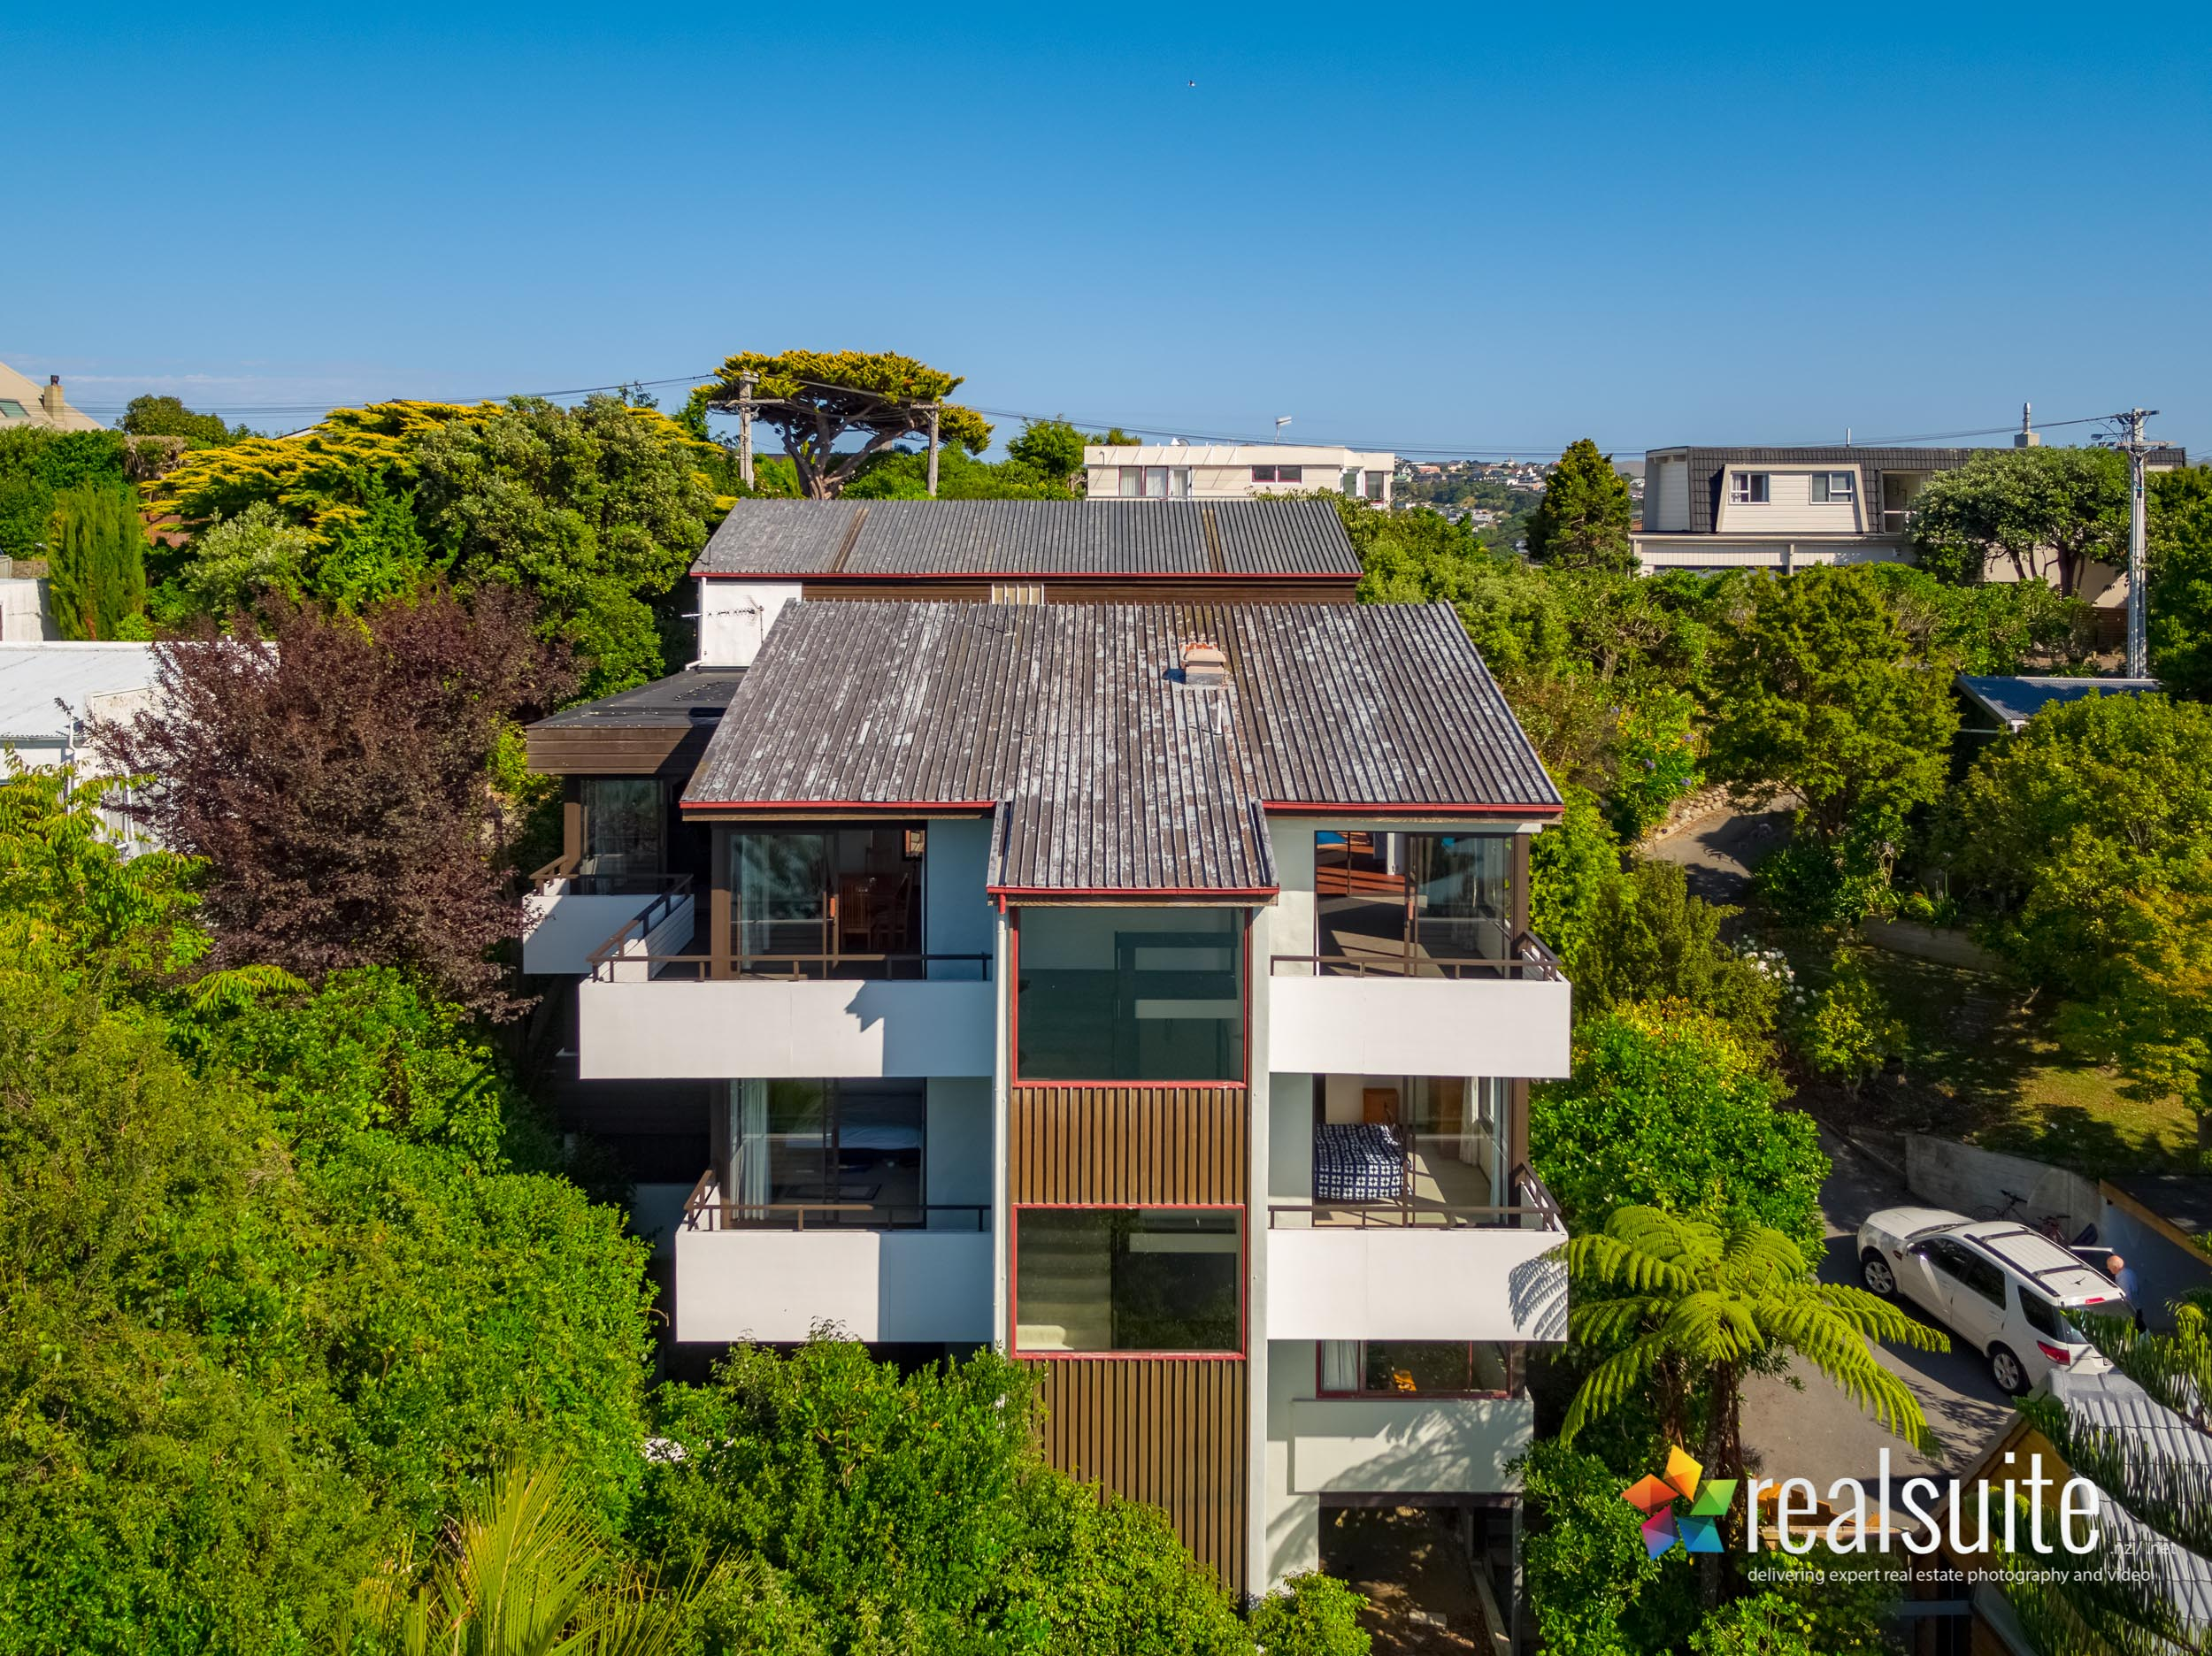 66 Seaview Road, Paremata, Aerial 0006